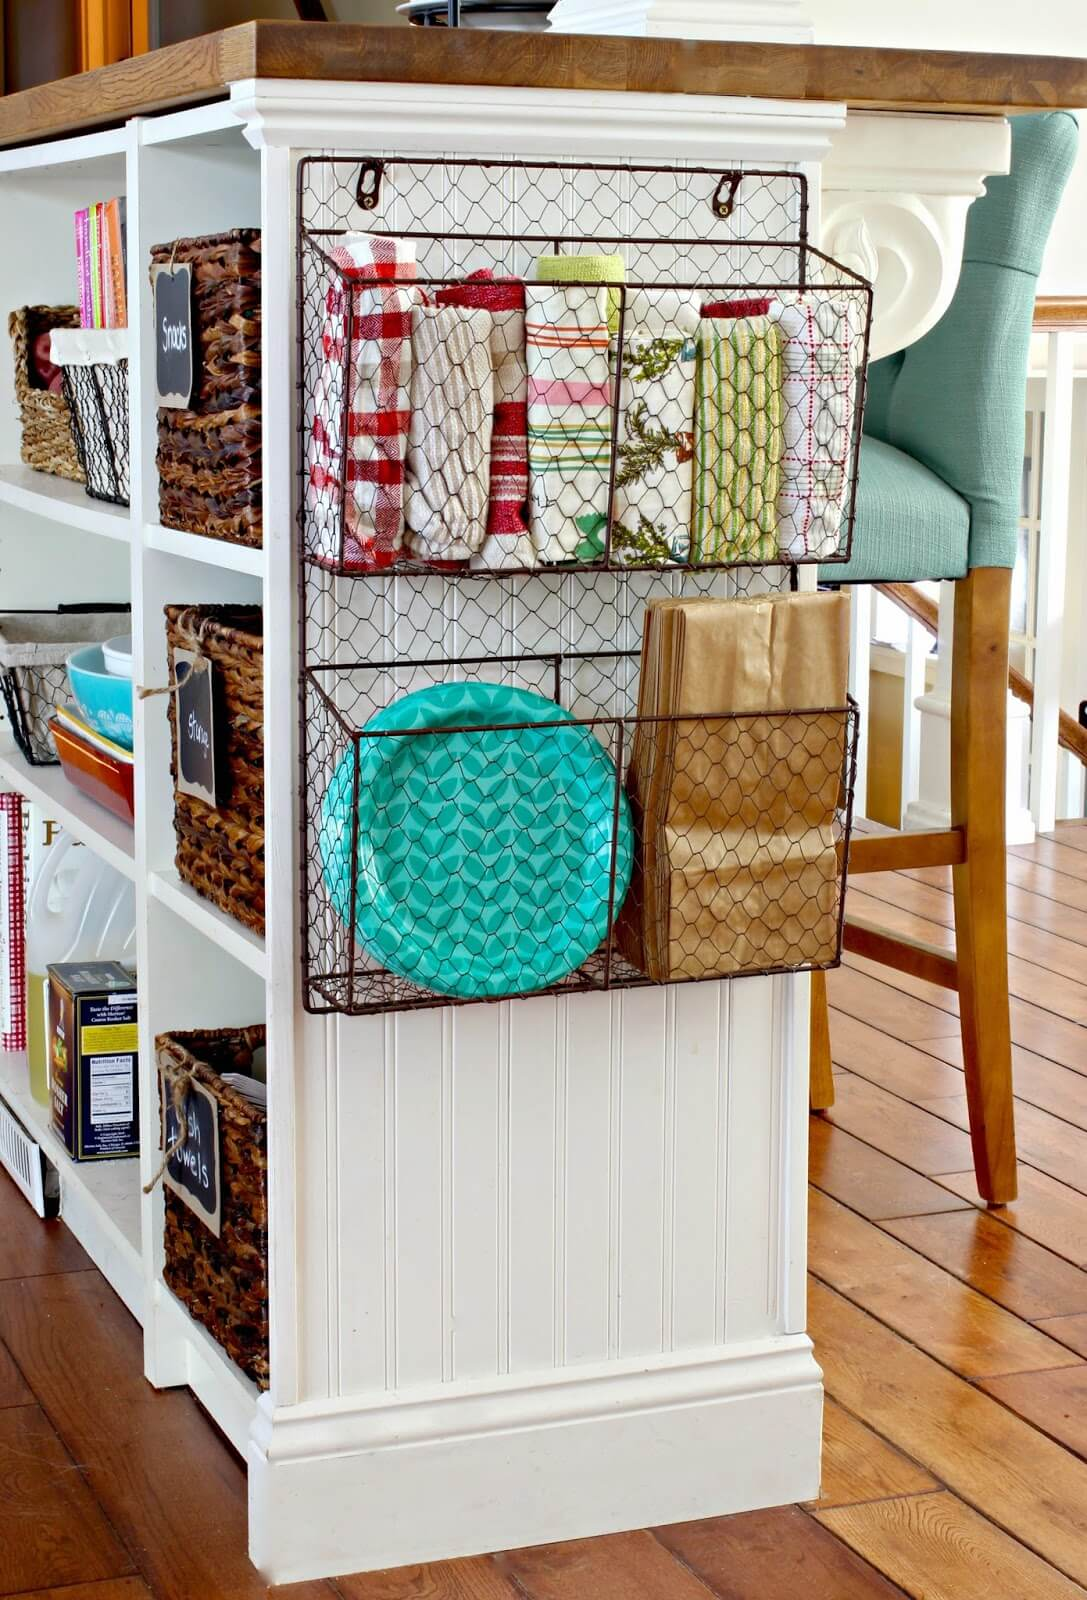 Chicken Wire Kitchen Organizer Baskets